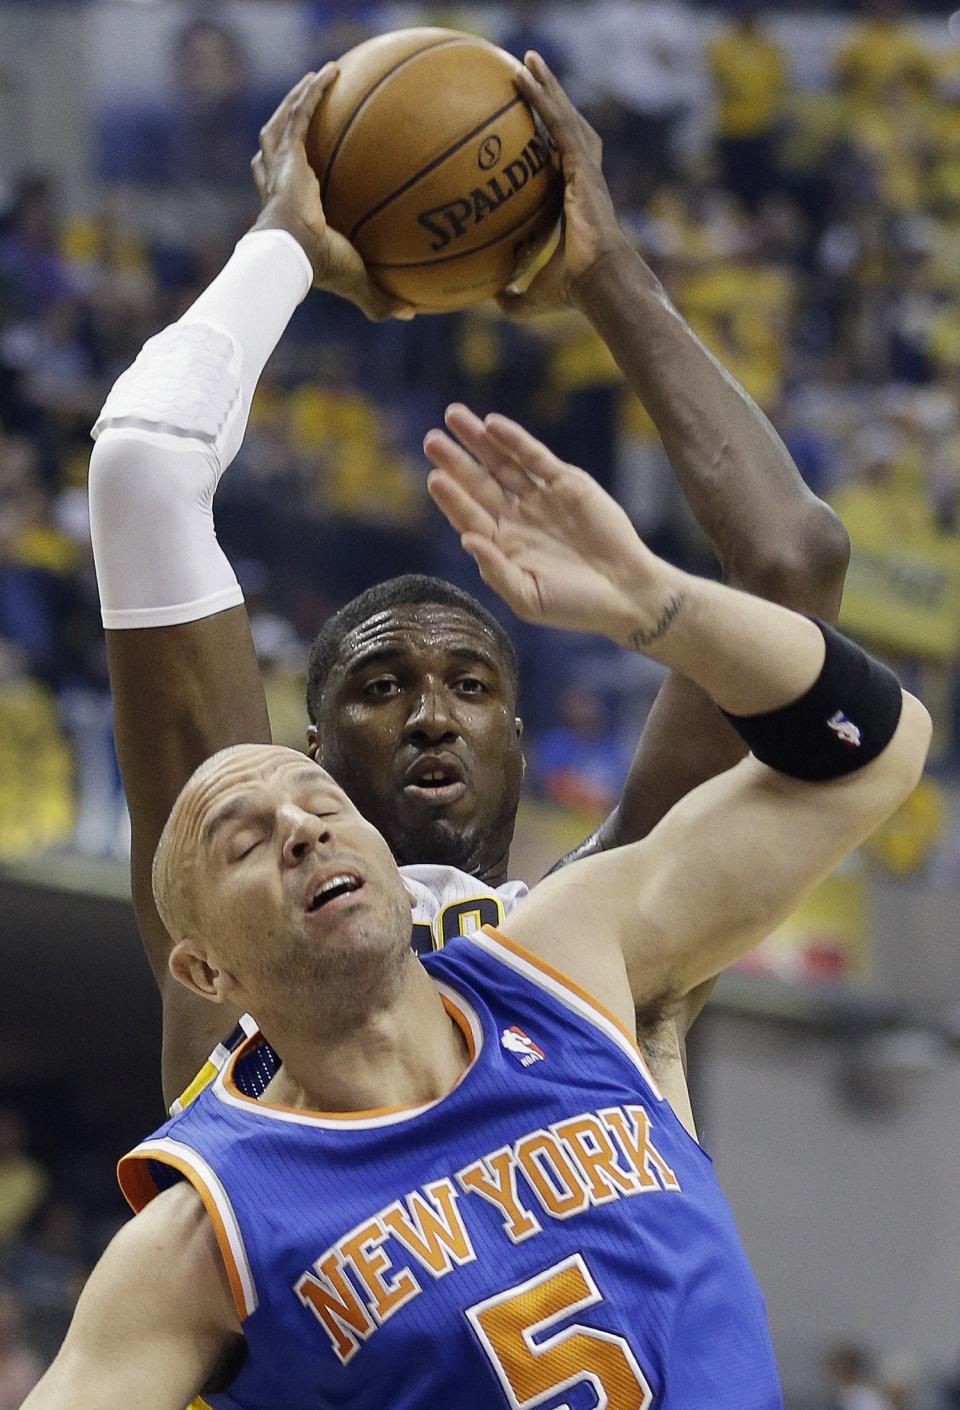 Indiana Pacers' Roy Hibbert grabs a rebound over New York Knicks' Jason Kidd (5) during the first half of Game 4 of an Eastern Conference semifinal NBA basketball playoff series on Tuesday, May 14, 2013, in Indianapolis. (AP Photo/Darron Cummings)